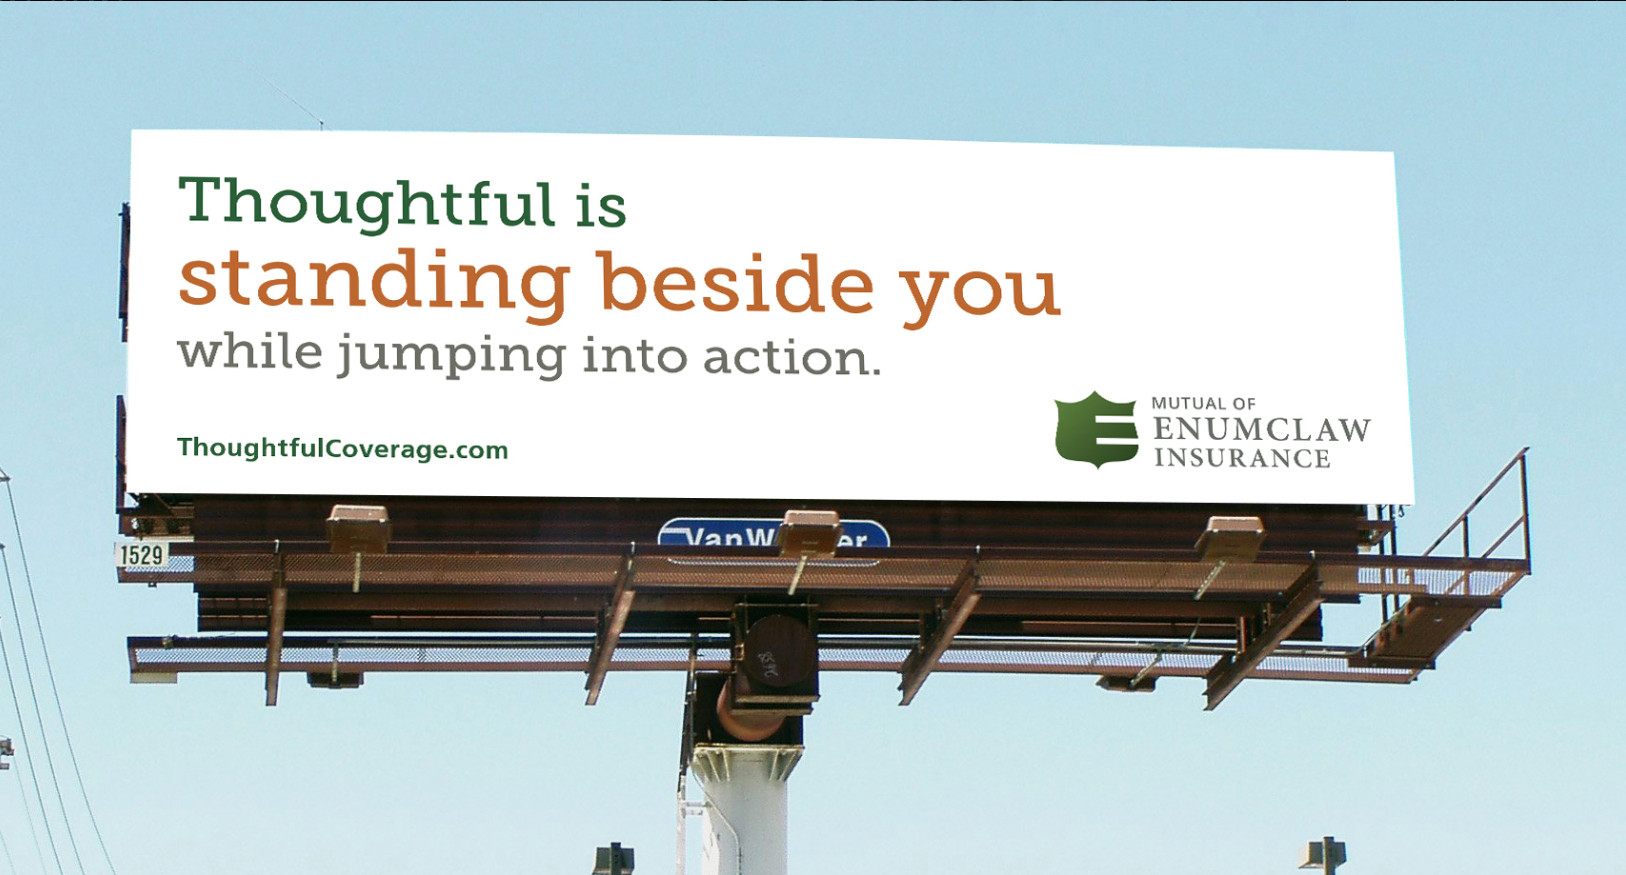 Outdoor board for Mutual of Enumclaw Insurance.